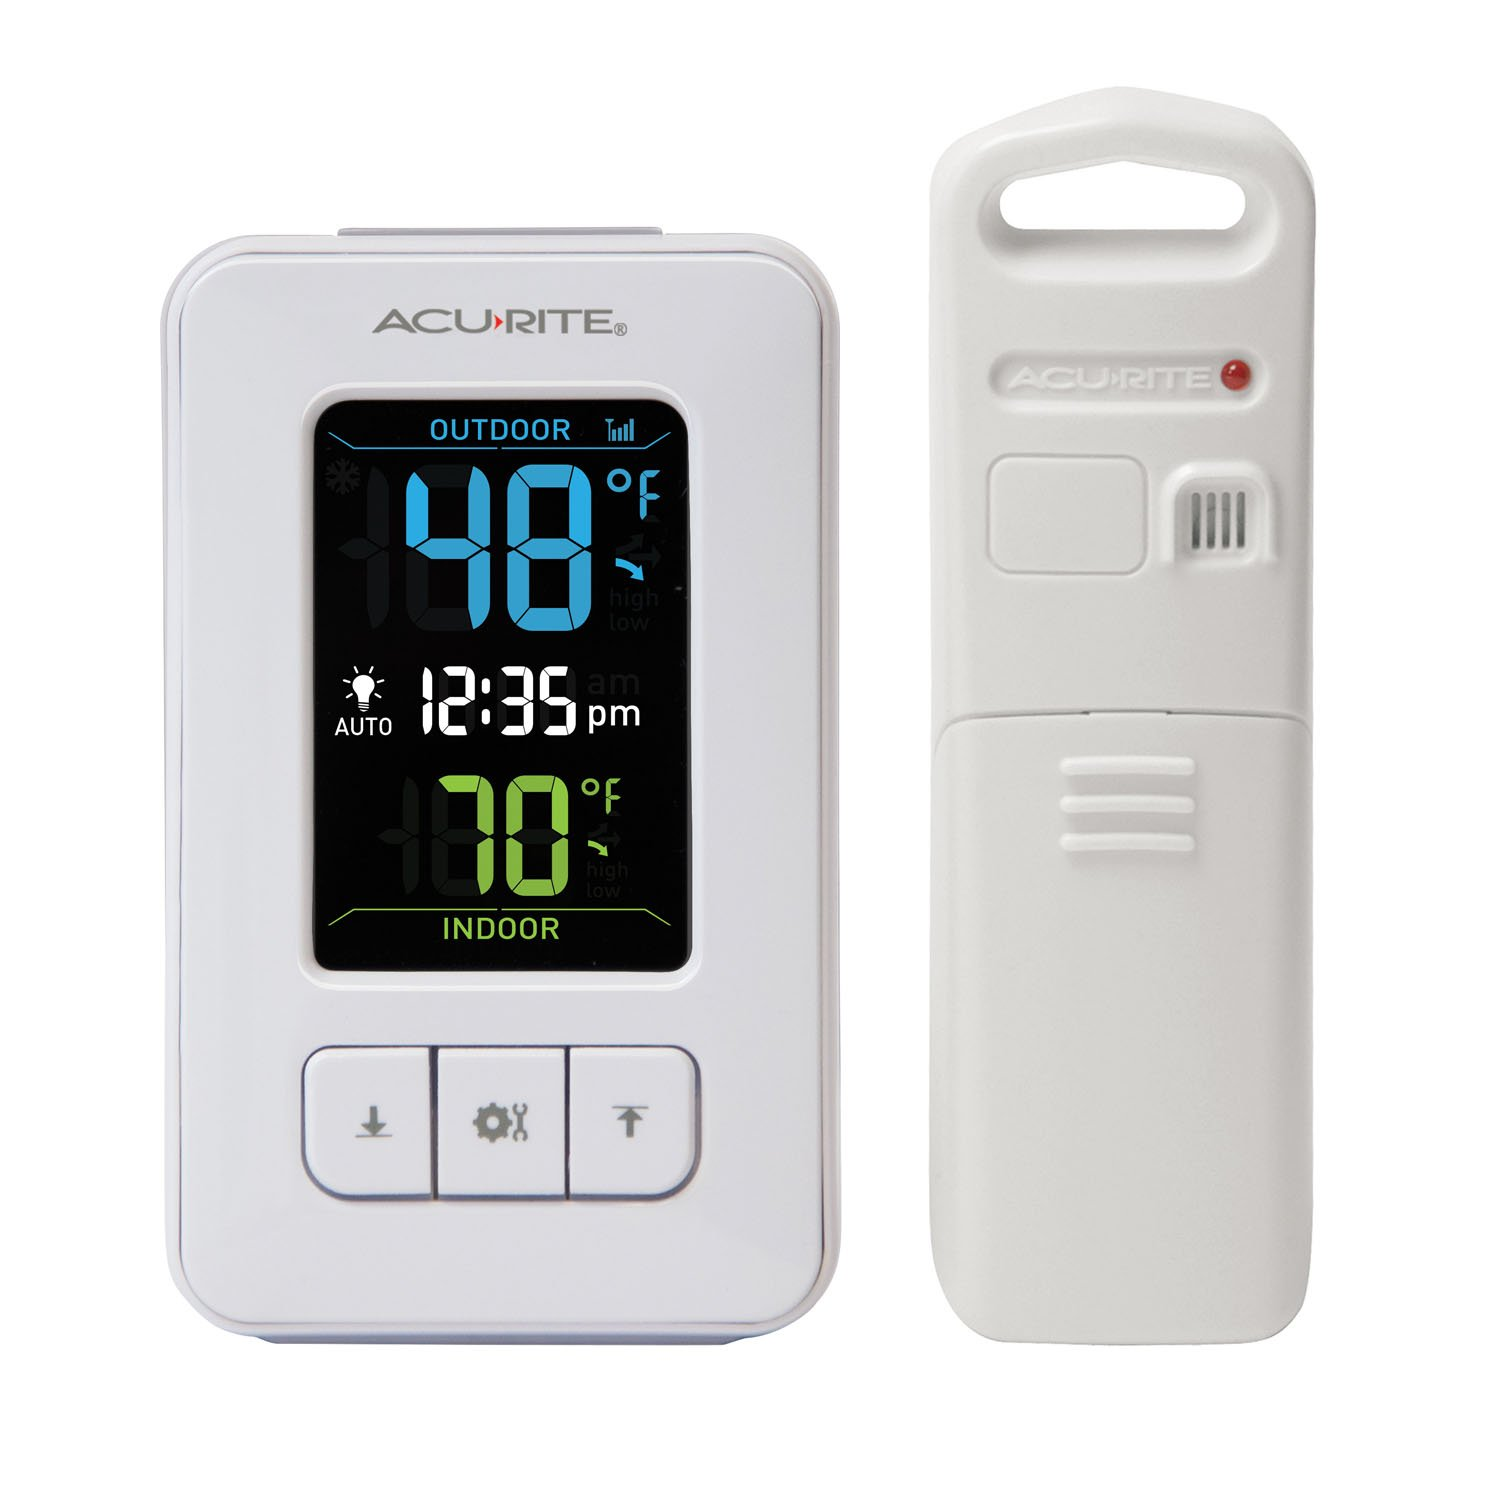 AcuRite 02028 Color Digital Thermometer with Indoor/Outdoor Temperature